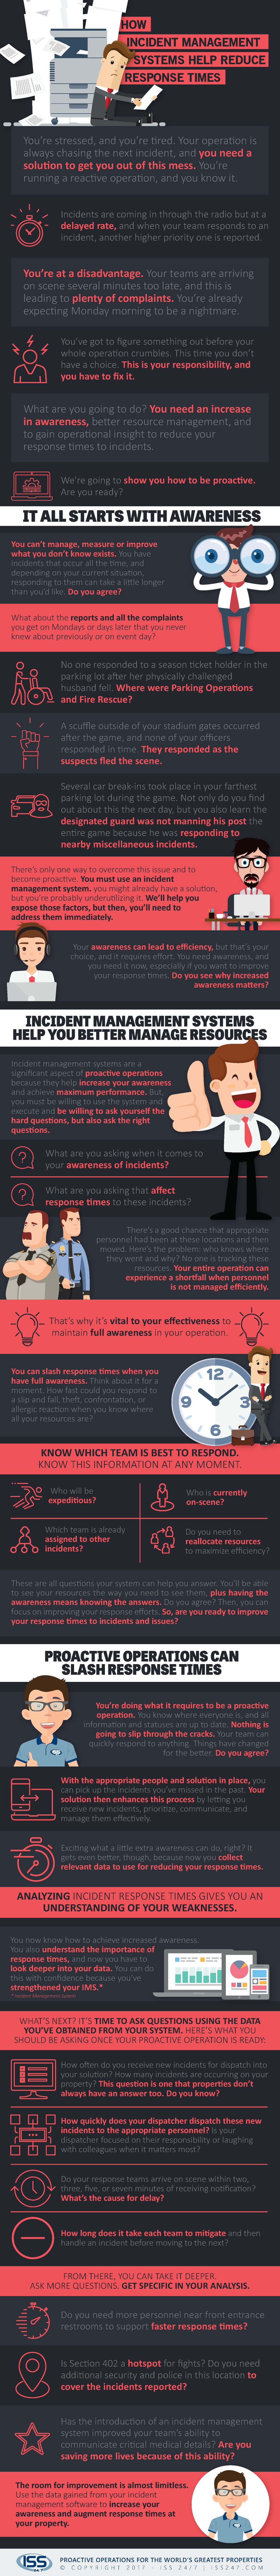 How Incident Management Systems Help Reduce Response Times